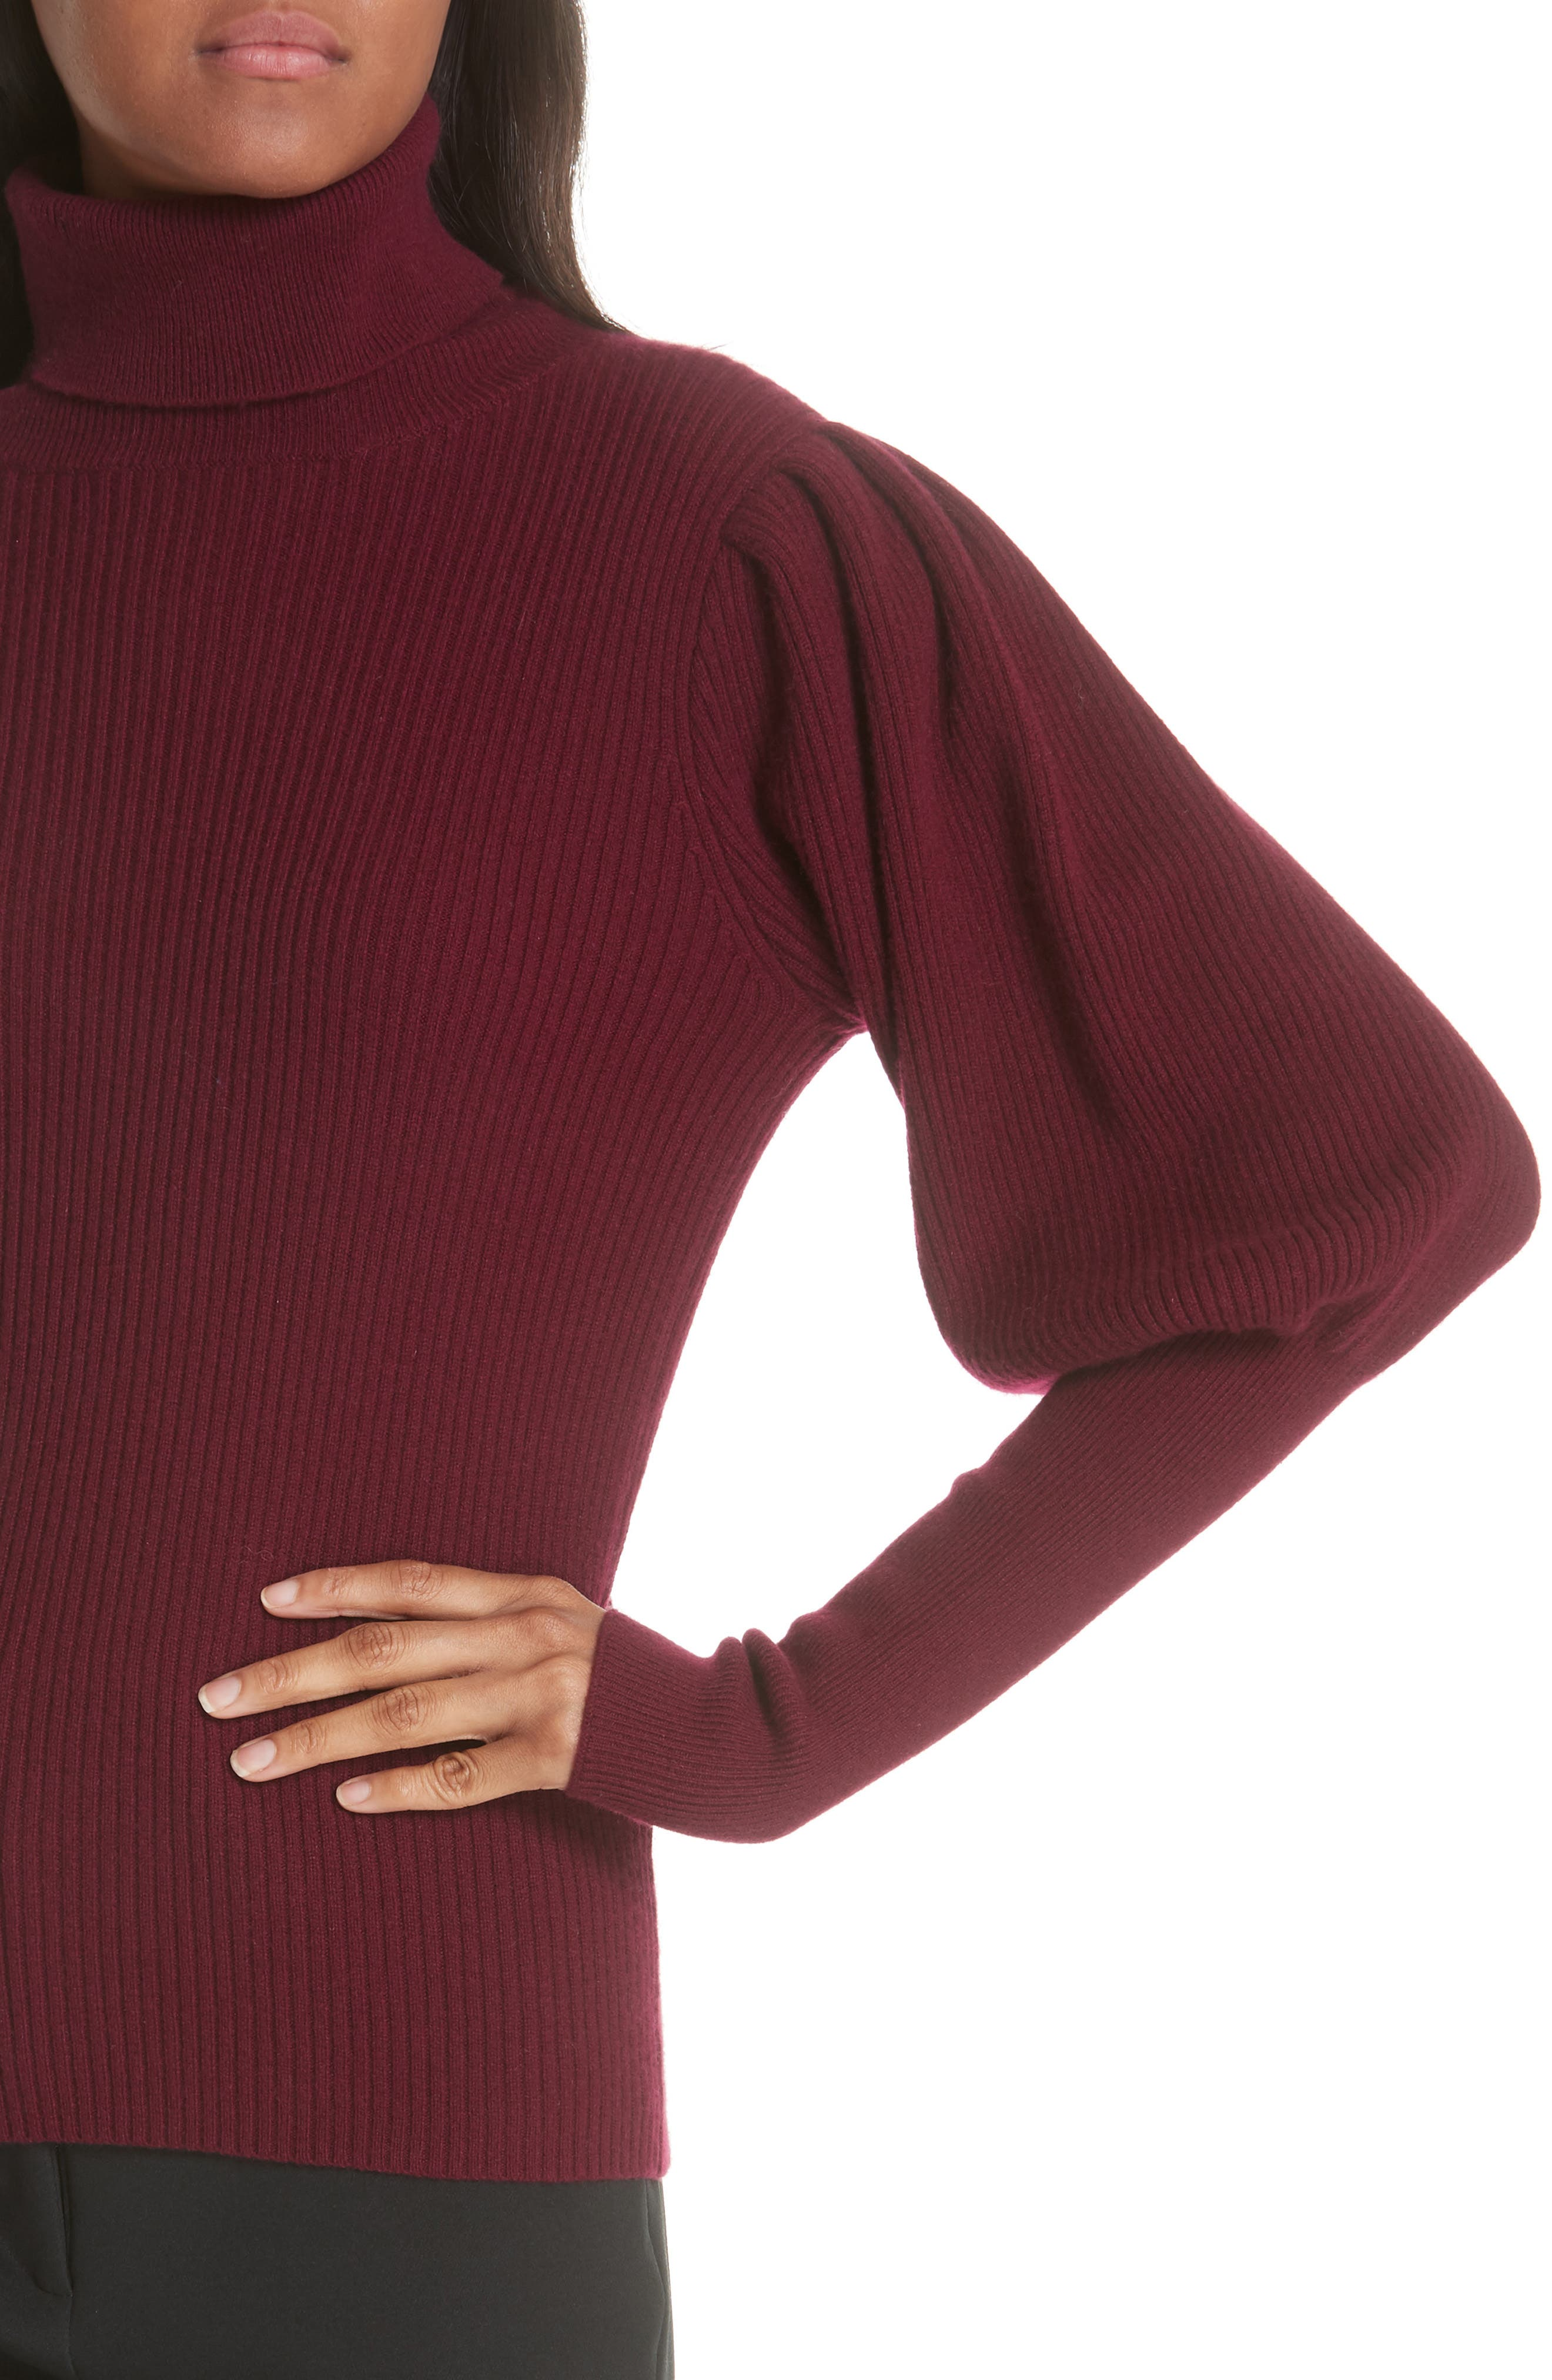 Bishop Sleeve Cashmere Sweater,                             Alternate thumbnail 4, color,                             933